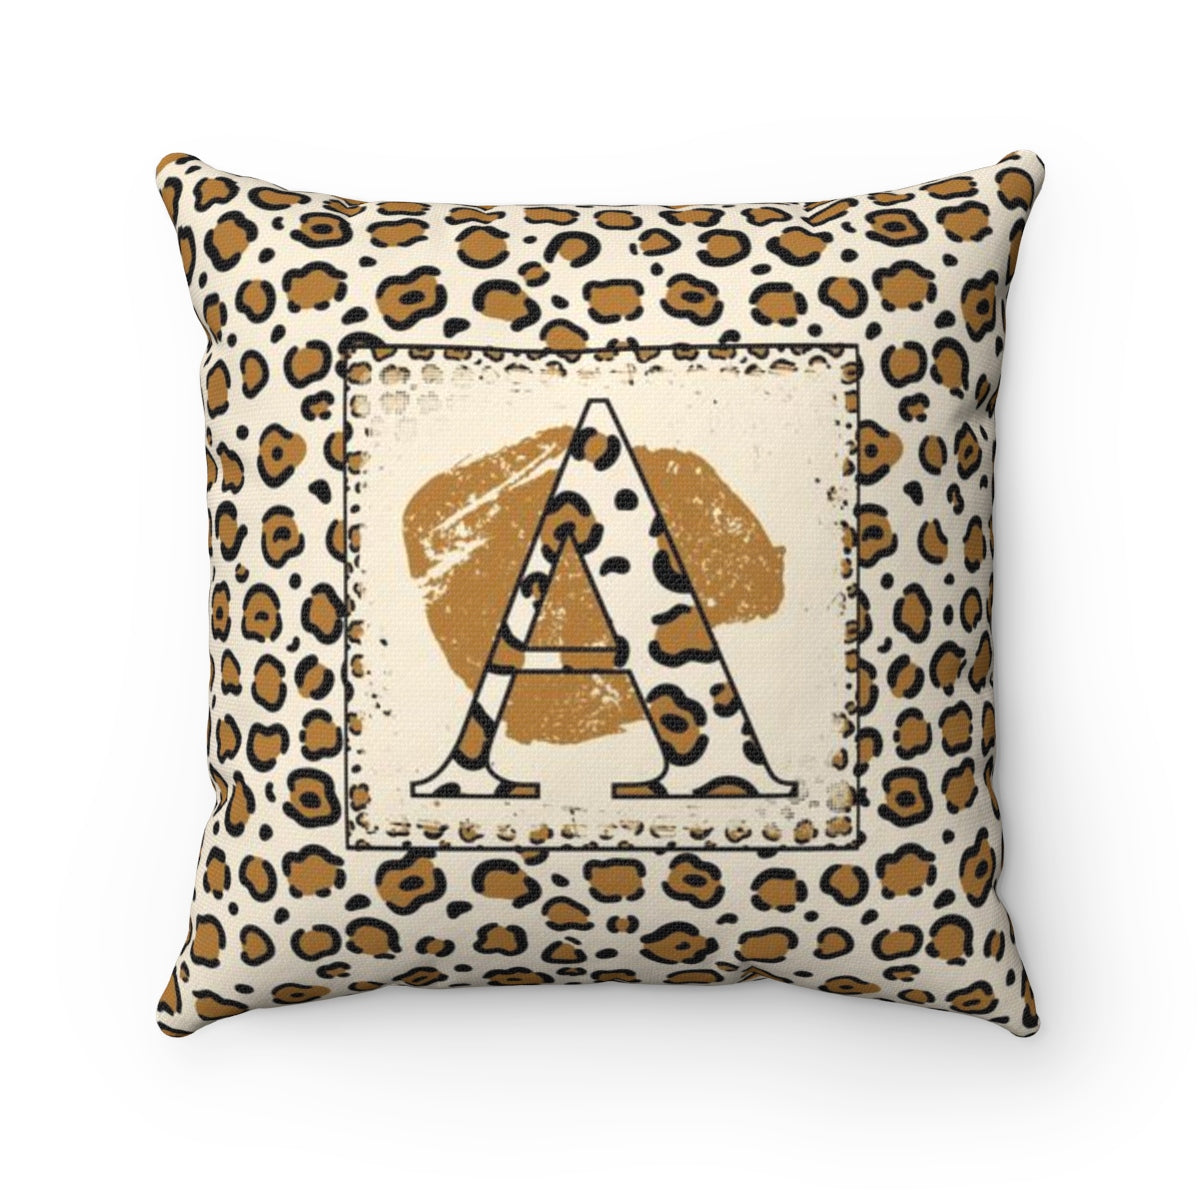 Leopard Monogram Throw Pillow